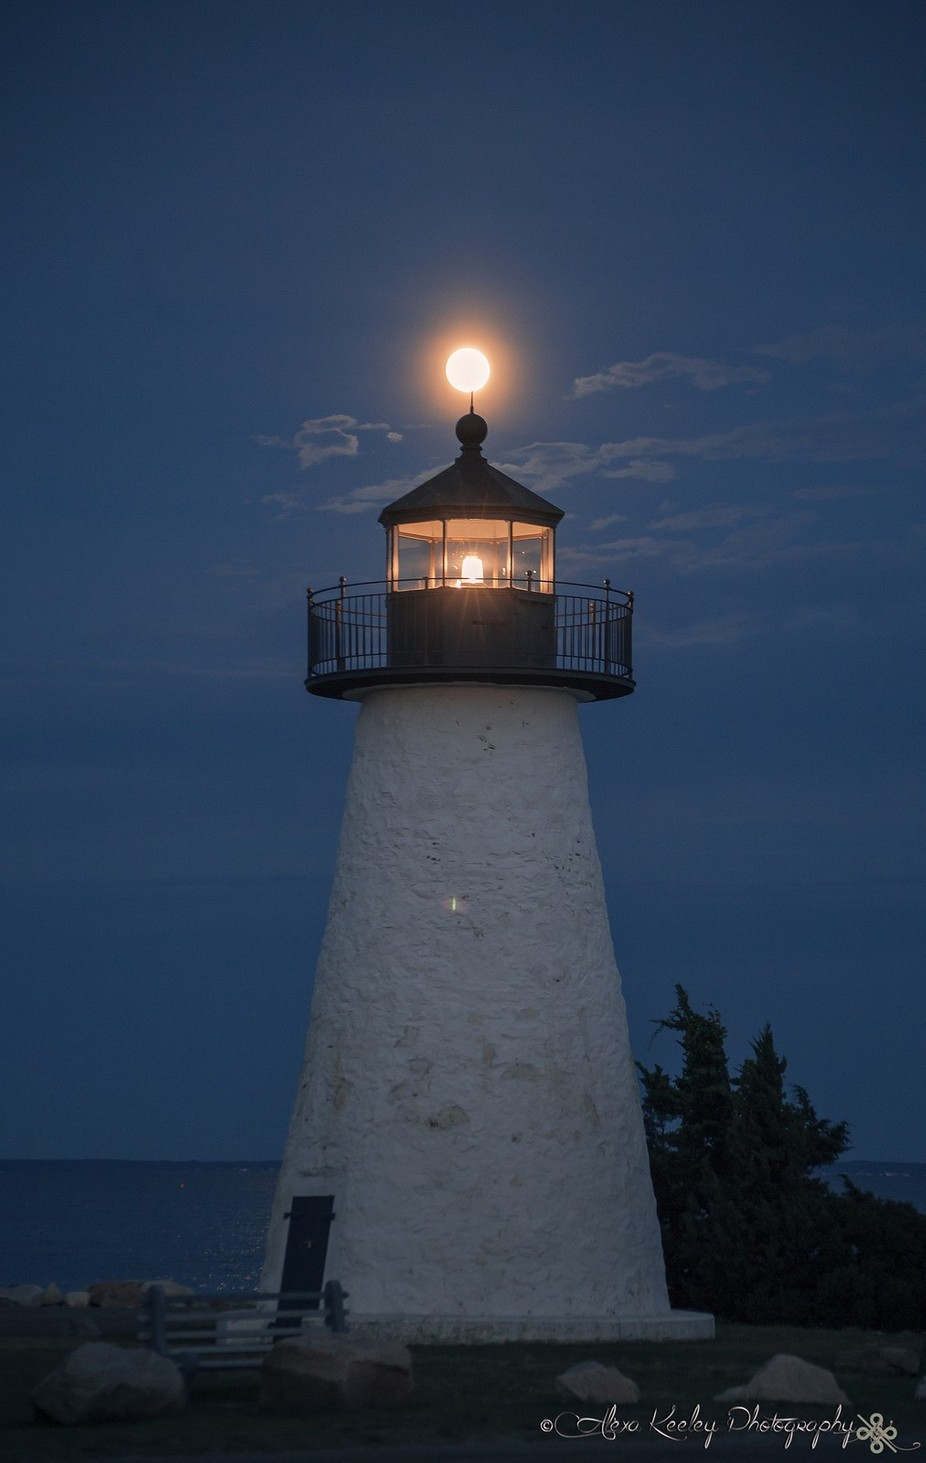 Moonlit Lighthouse by keeley15lf - Stillness Photo Contest